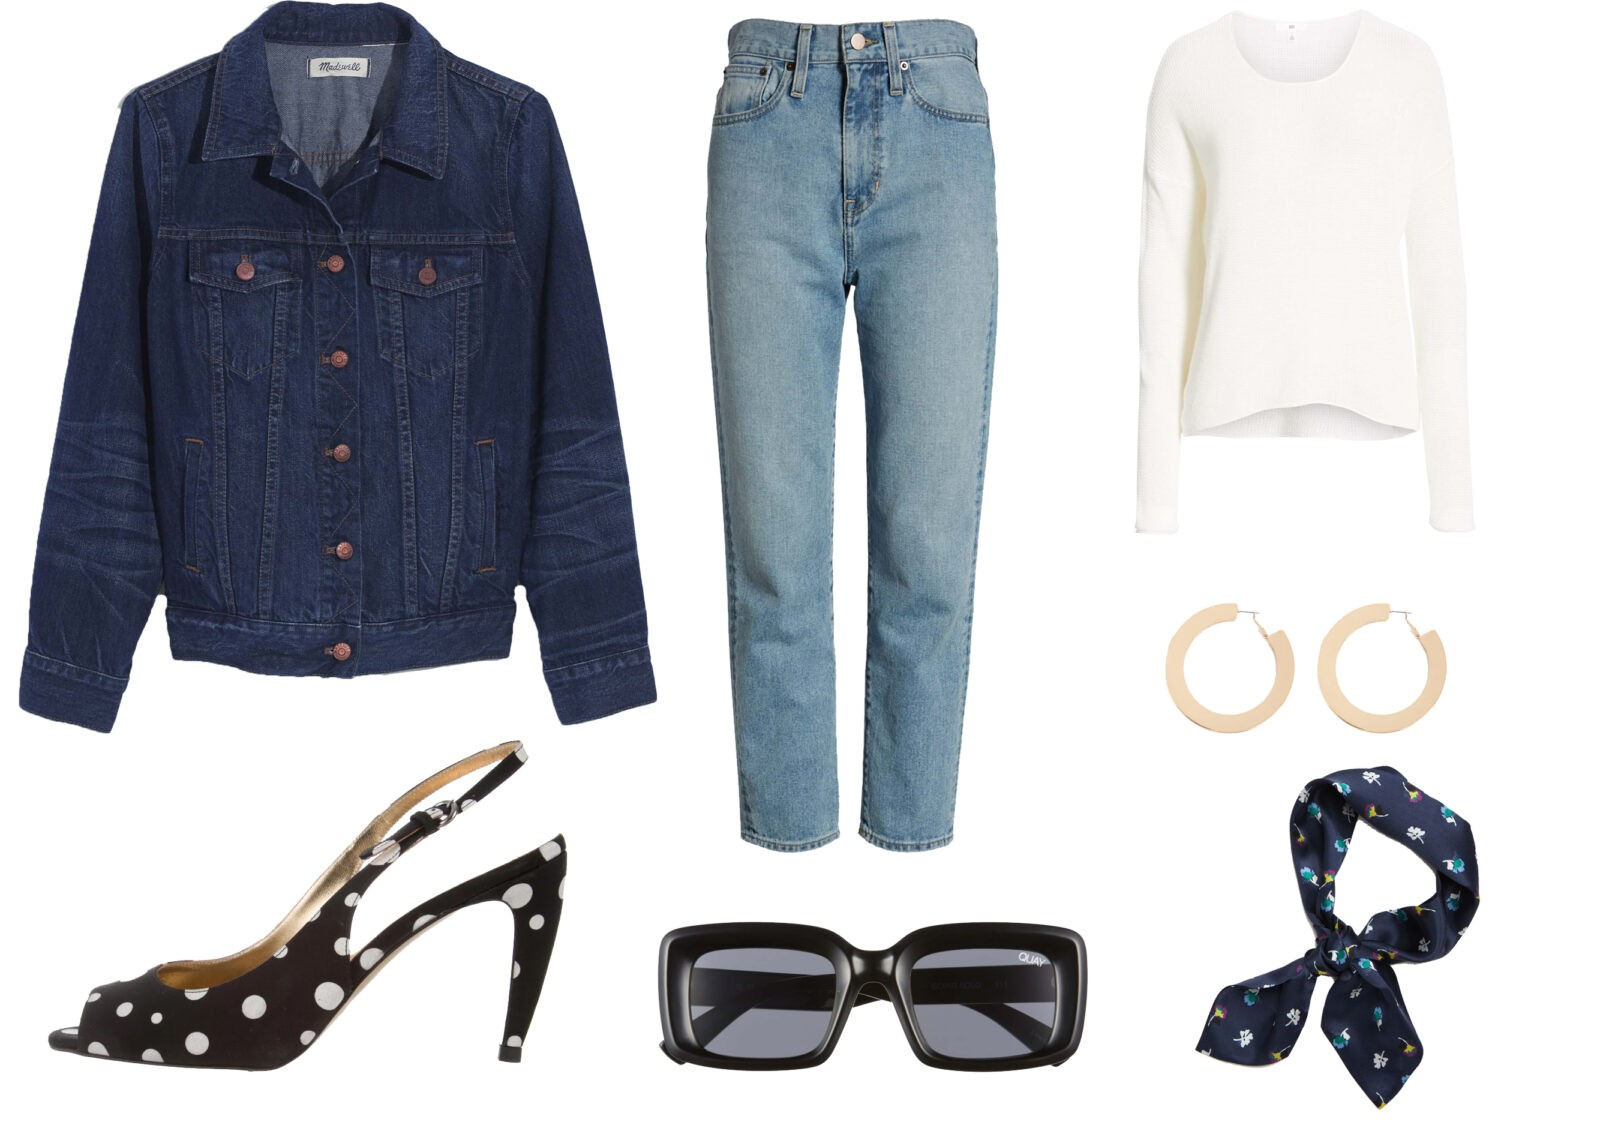 camille charriere edit seven stylebook denim jacket